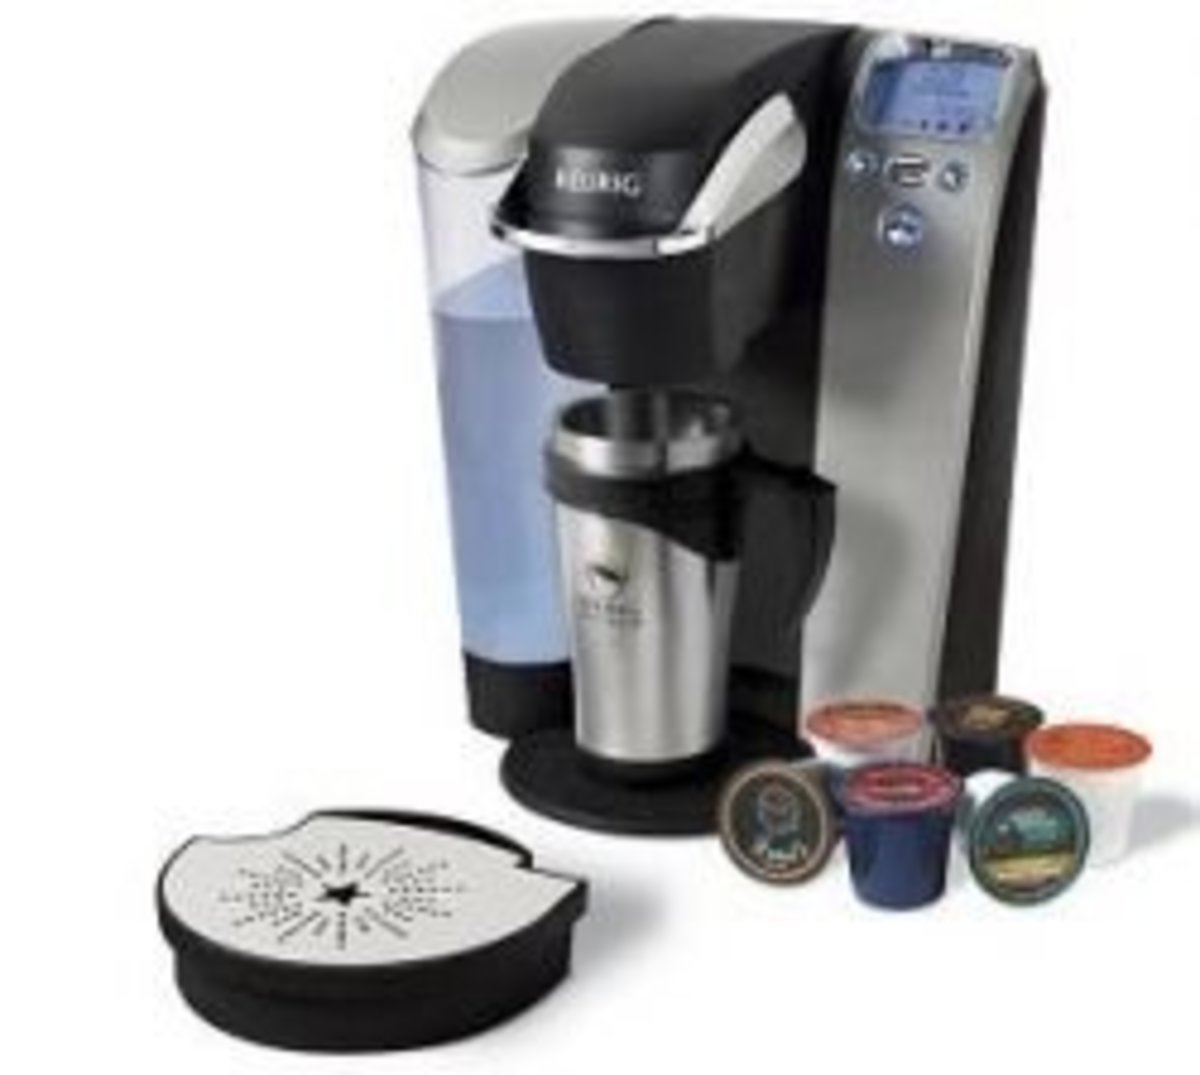 Best coffee makers 2014: Keurig makes the list